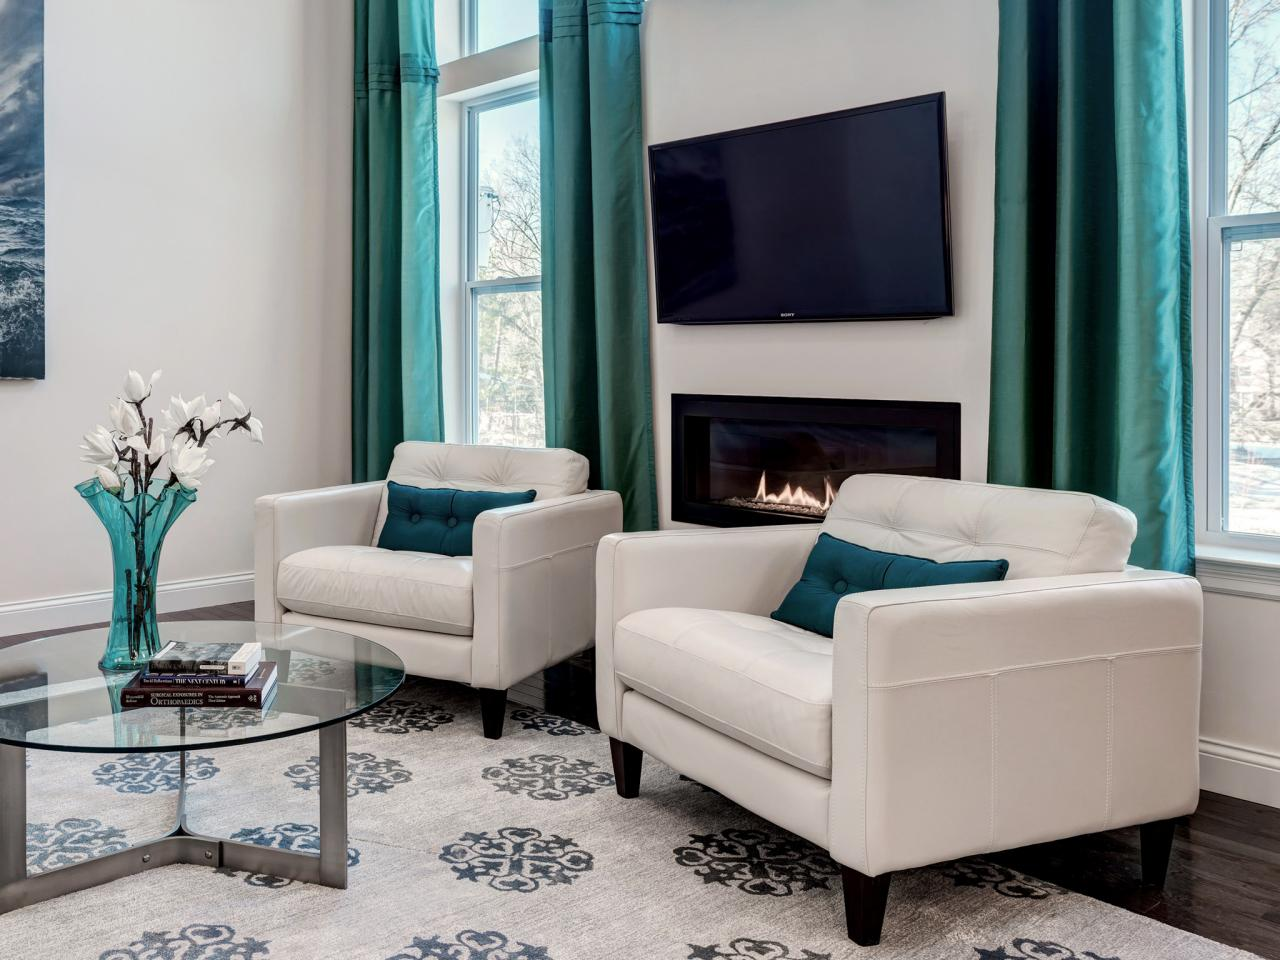 How to Enrich Interior with Royal Turquoise Velvet Fabric ...